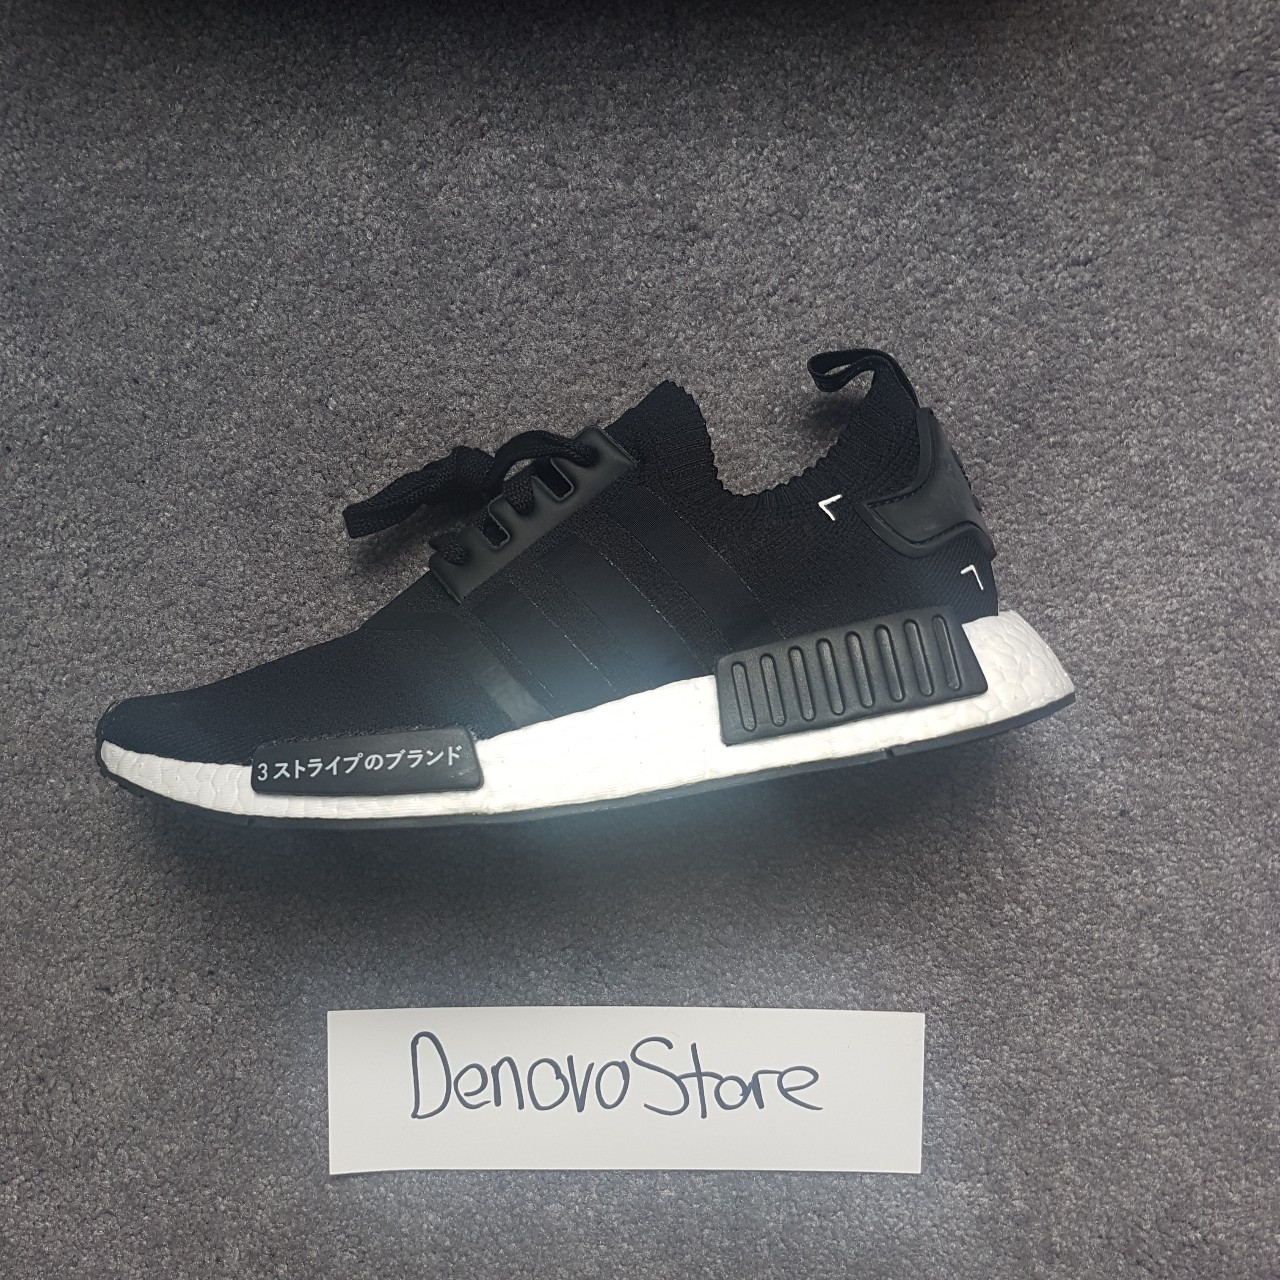 Adidas Nmd R1 Japan Boost 2016 Black And White Brand Depop